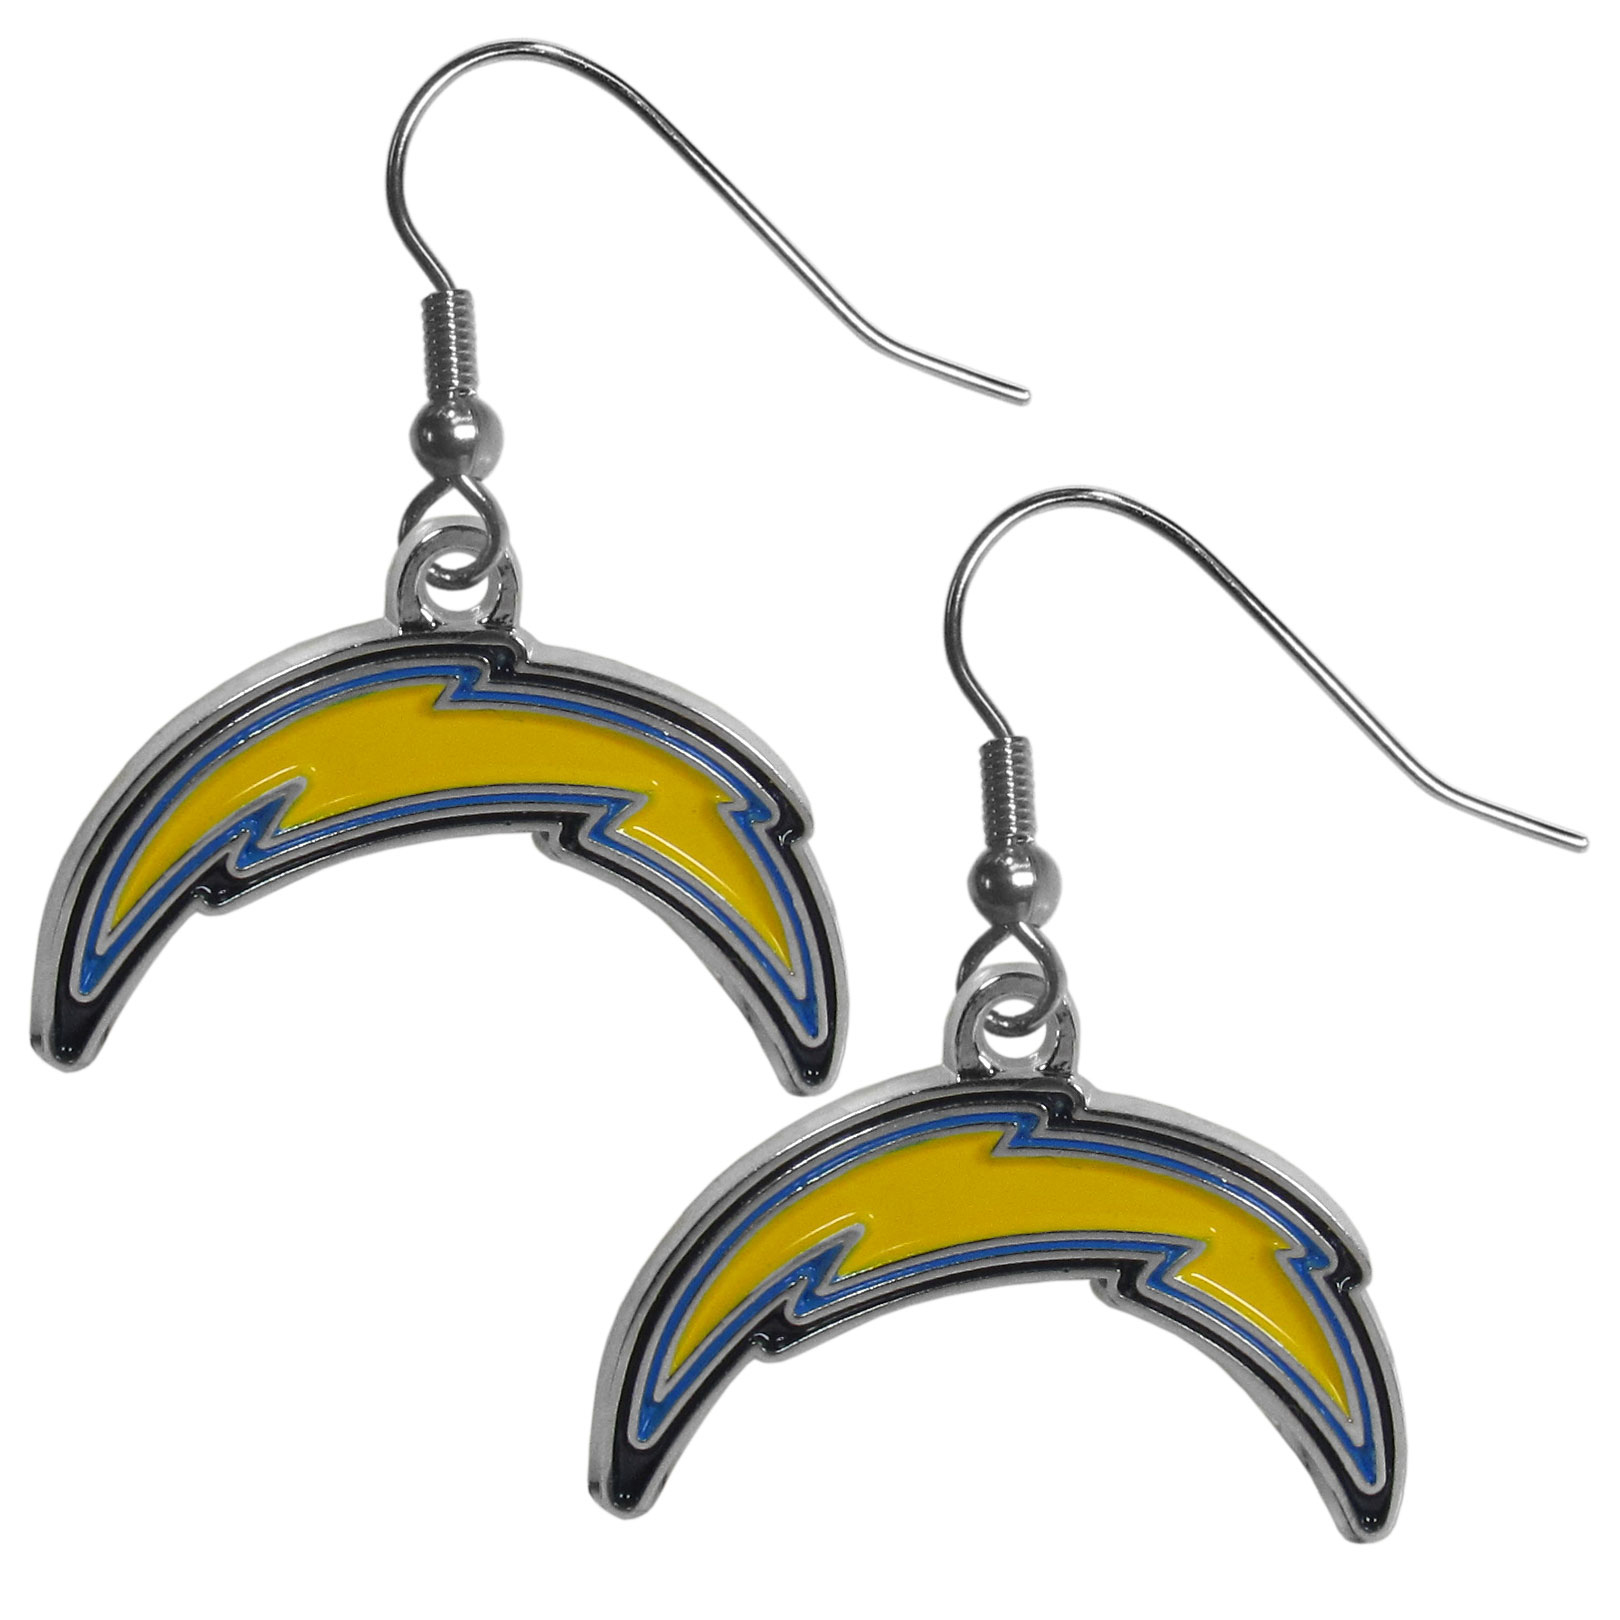 San Diego Chargers Chrome Dangle Earrings - Officially licensed NFL San Diego Chargers dangle earrings are fully cast with exceptional detail and a hand enameled finish. The San Diego Chargers earrings have a high polish nickel free chrome finish and hypoallergenic fishhook posts. Officially licensed NFL product Licensee: Siskiyou Buckle .com